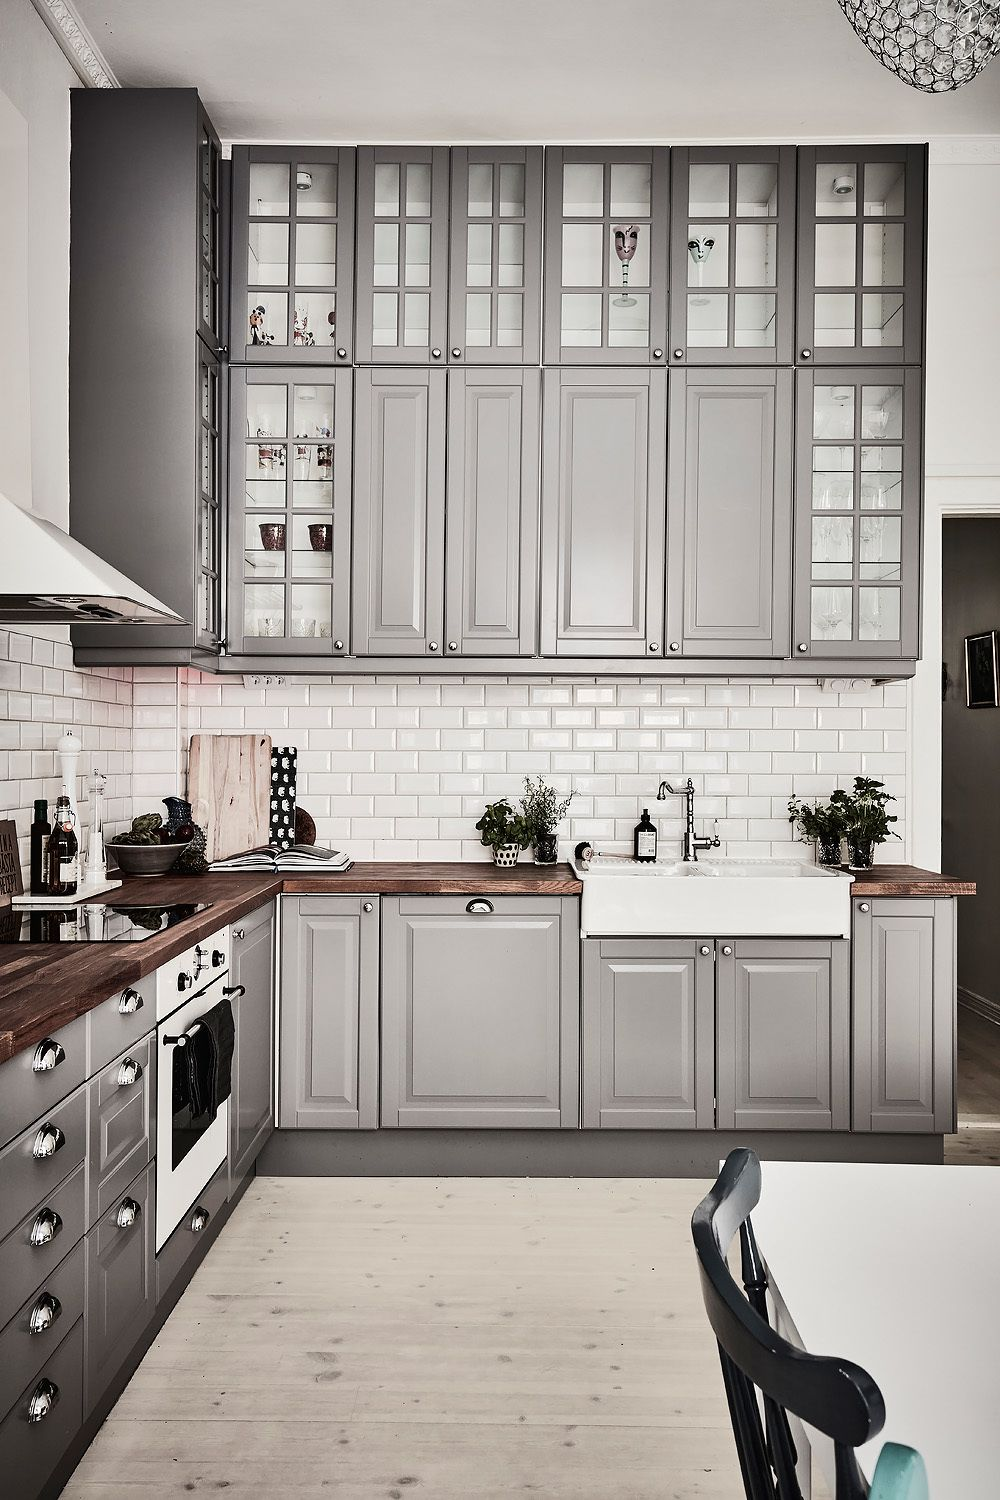 Inspiring Kitchens You Wont Believe Are IKEA Decorating Tips - Tiles to go with a grey kitchen